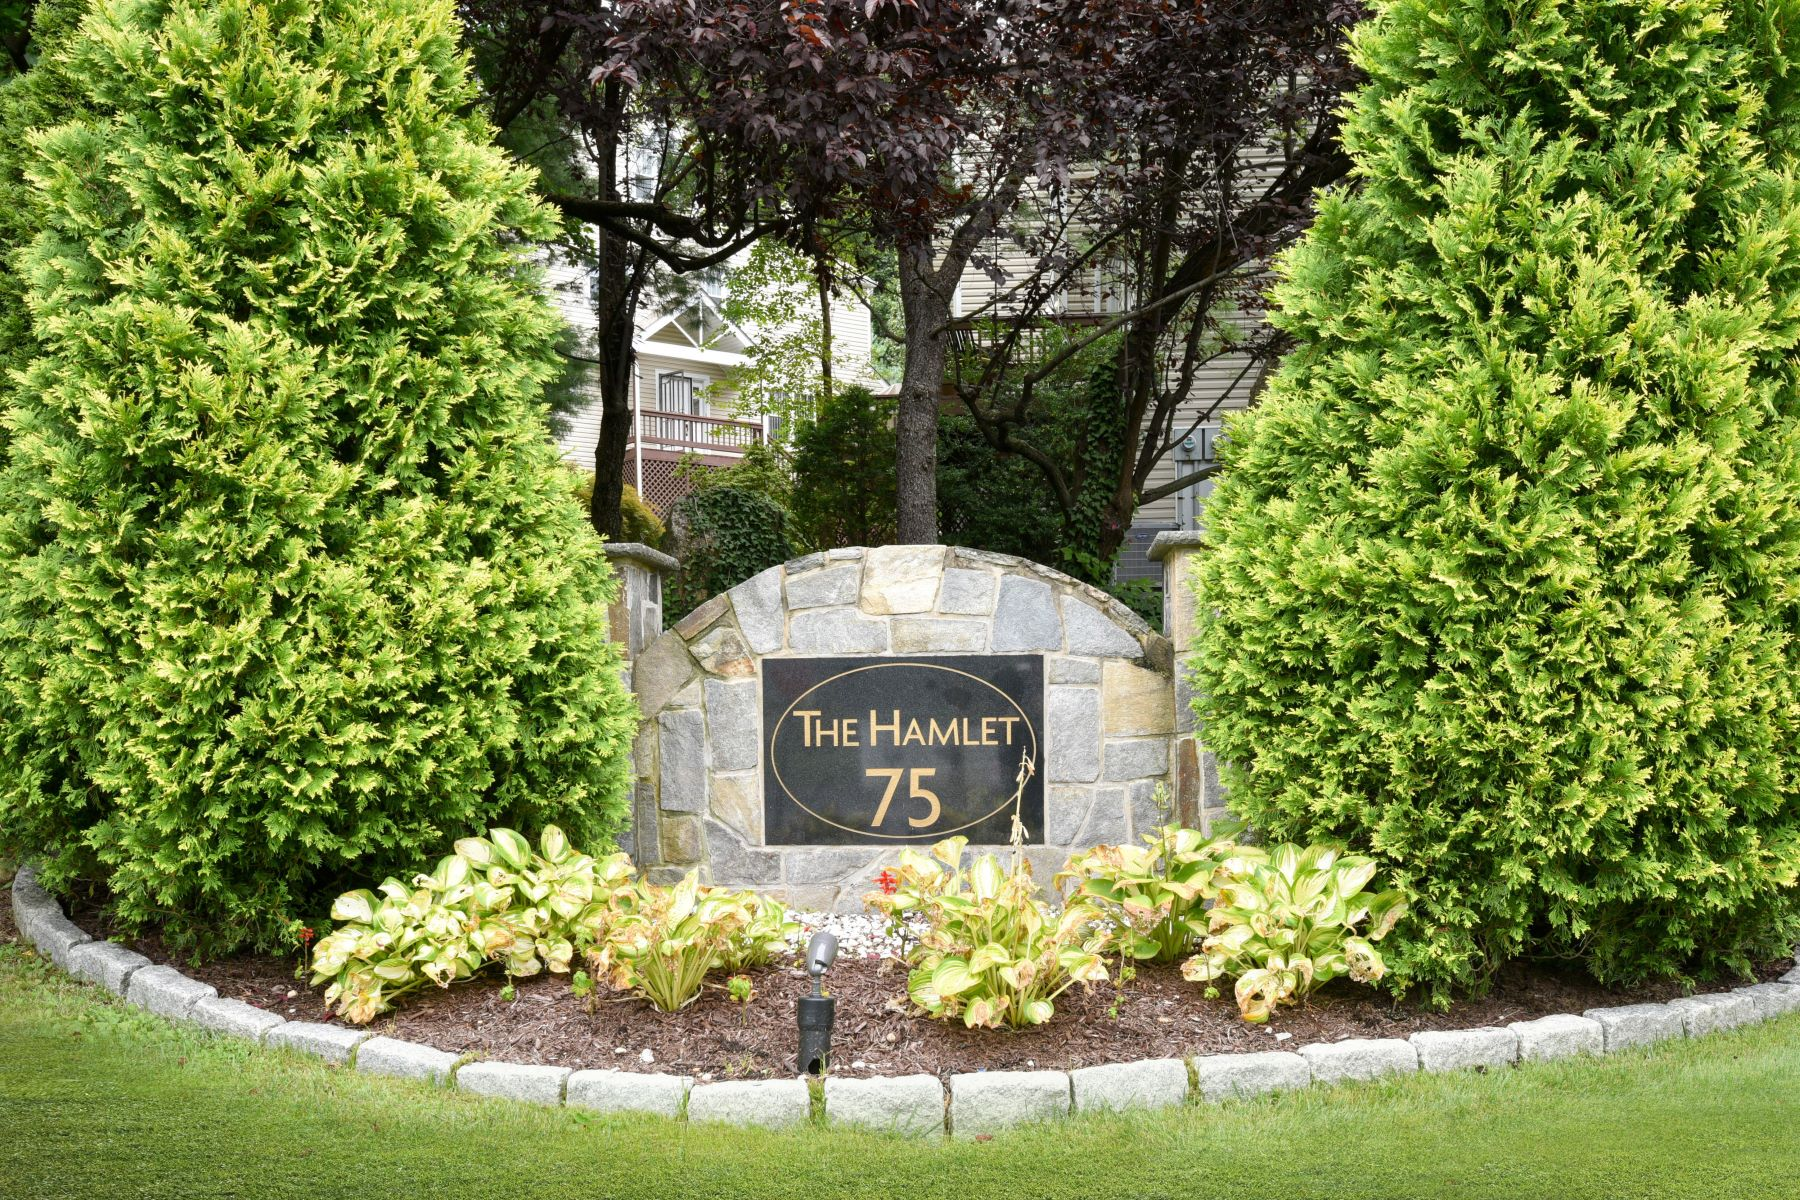 Single Family Homes for Sale at Welcome to the Hamlet Condo's 75 West Hartsdale Avenue 26 Hartsdale, New York 10530 United States